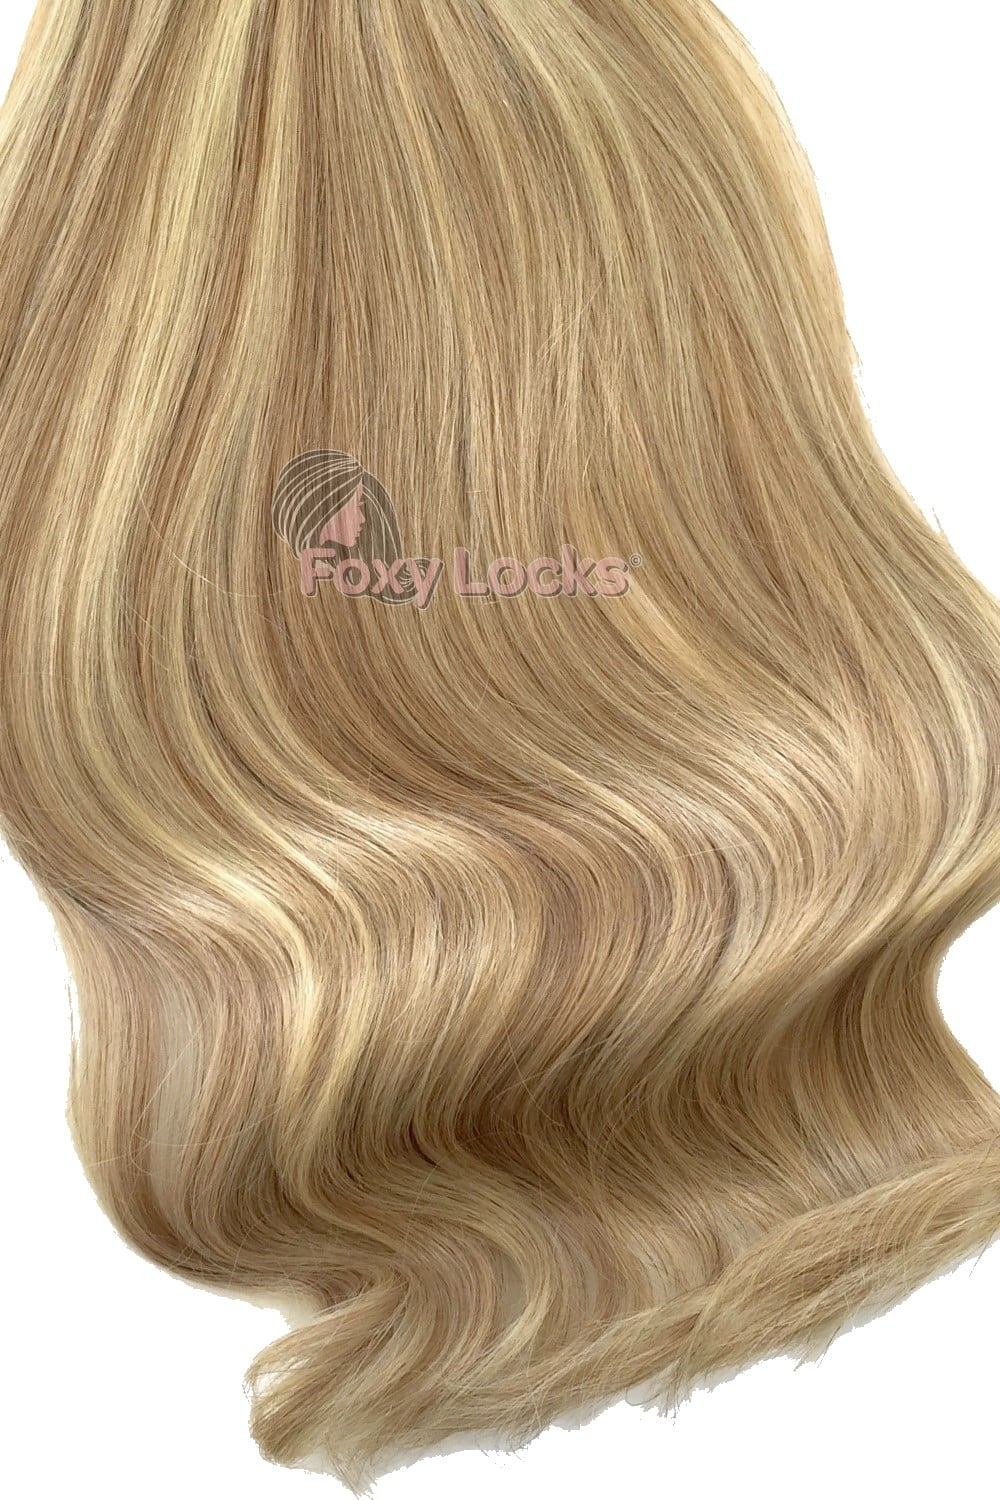 Latte Blonde Superior 20 Clip In Human Hair Extensions 230g